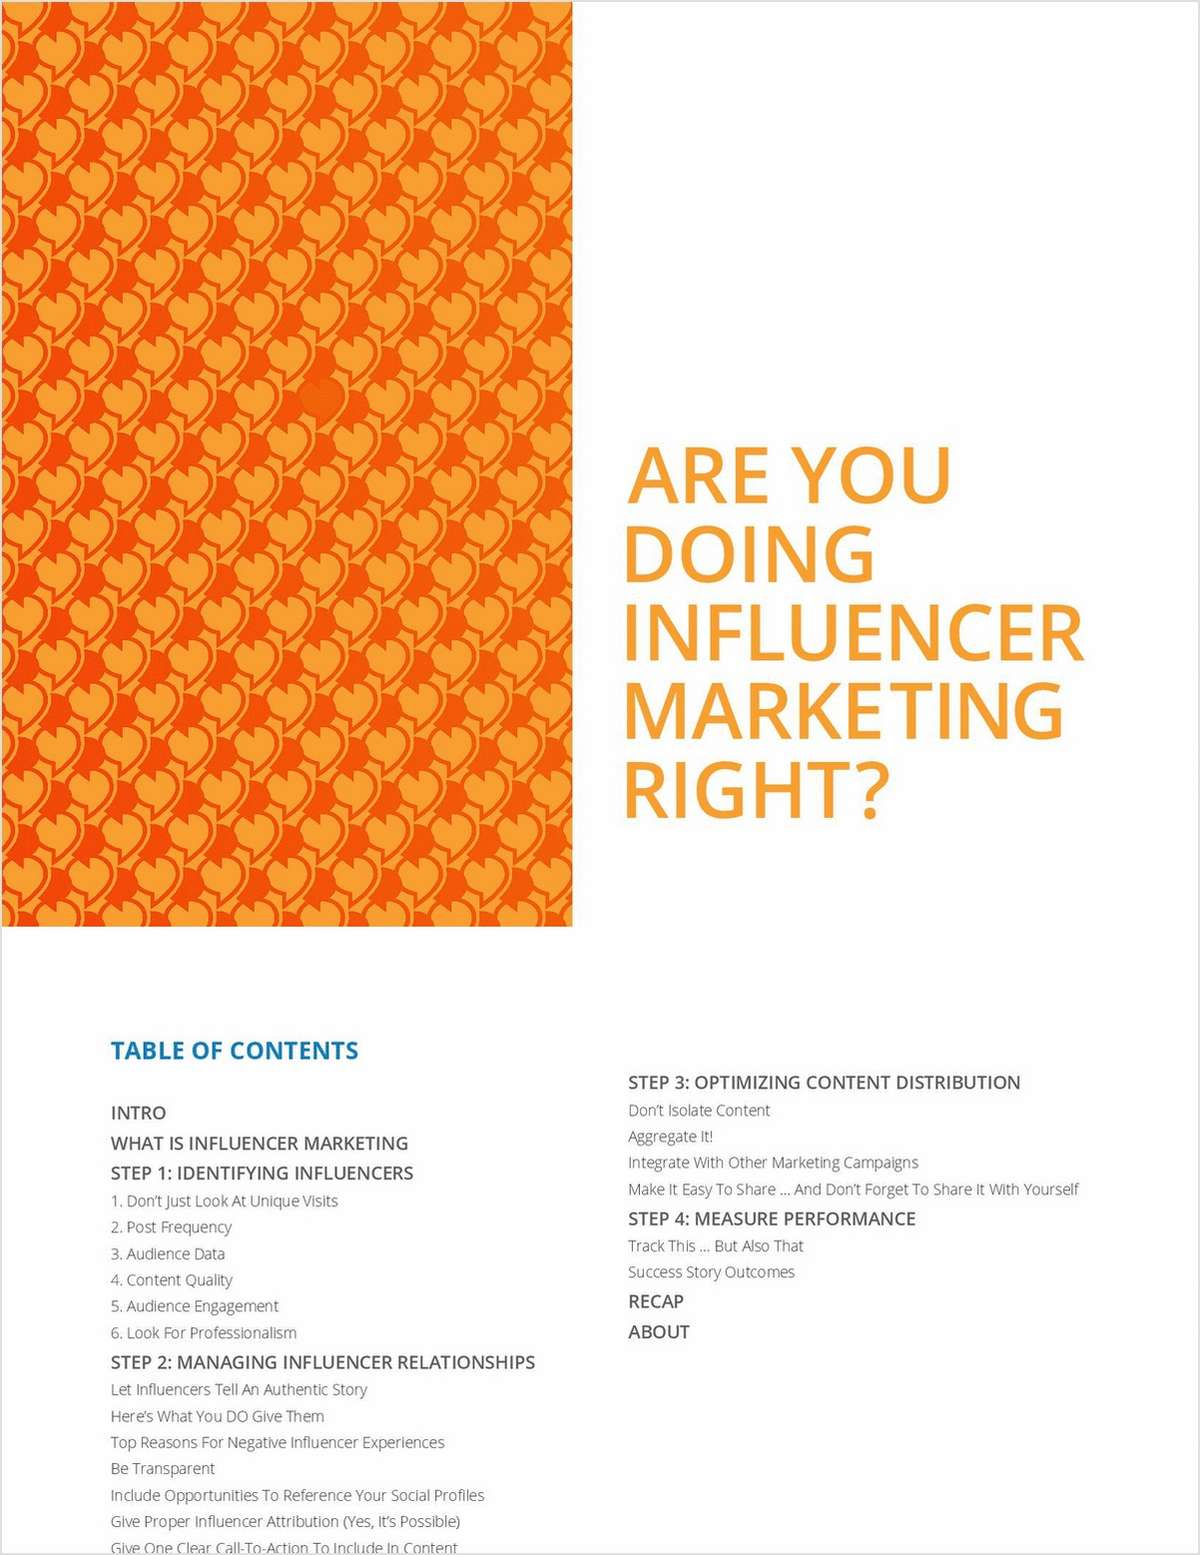 Are You Doing Influencer Marketing Right?